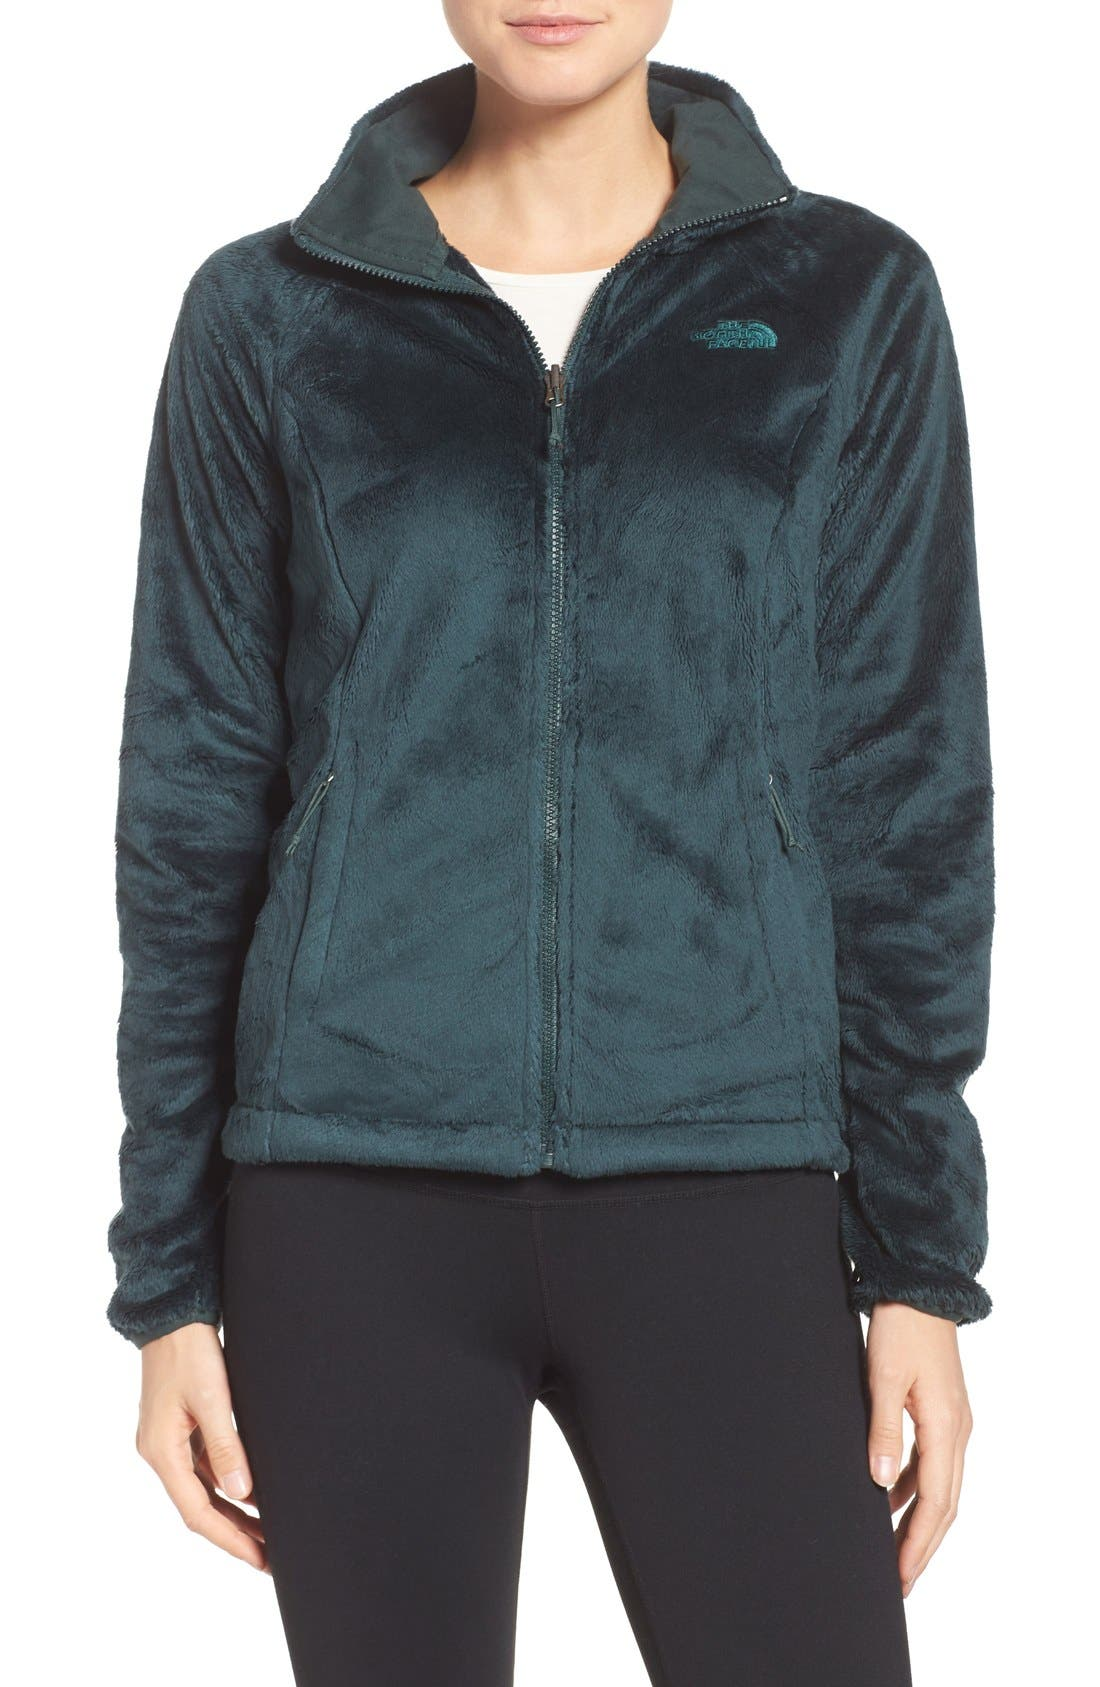 Boundary Triclimate<sup>®</sup> 3-in-1 Jacket,                             Alternate thumbnail 13, color,